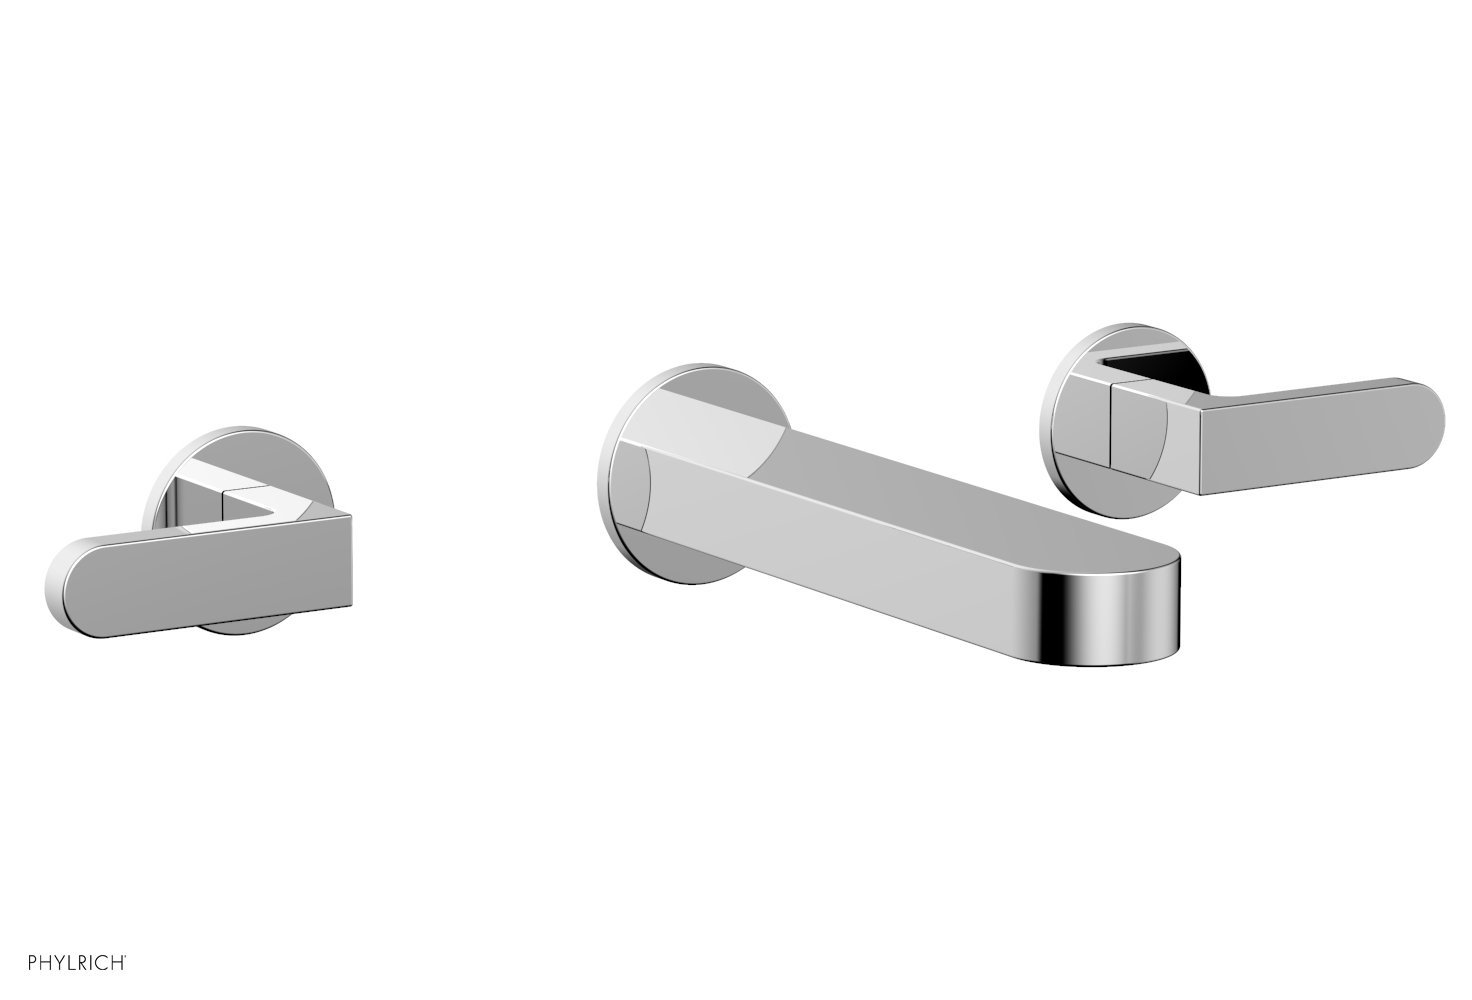 Phylrich 183-12-026 ROND Wall Lavatory Set - Lever Handles - Polished Chrome